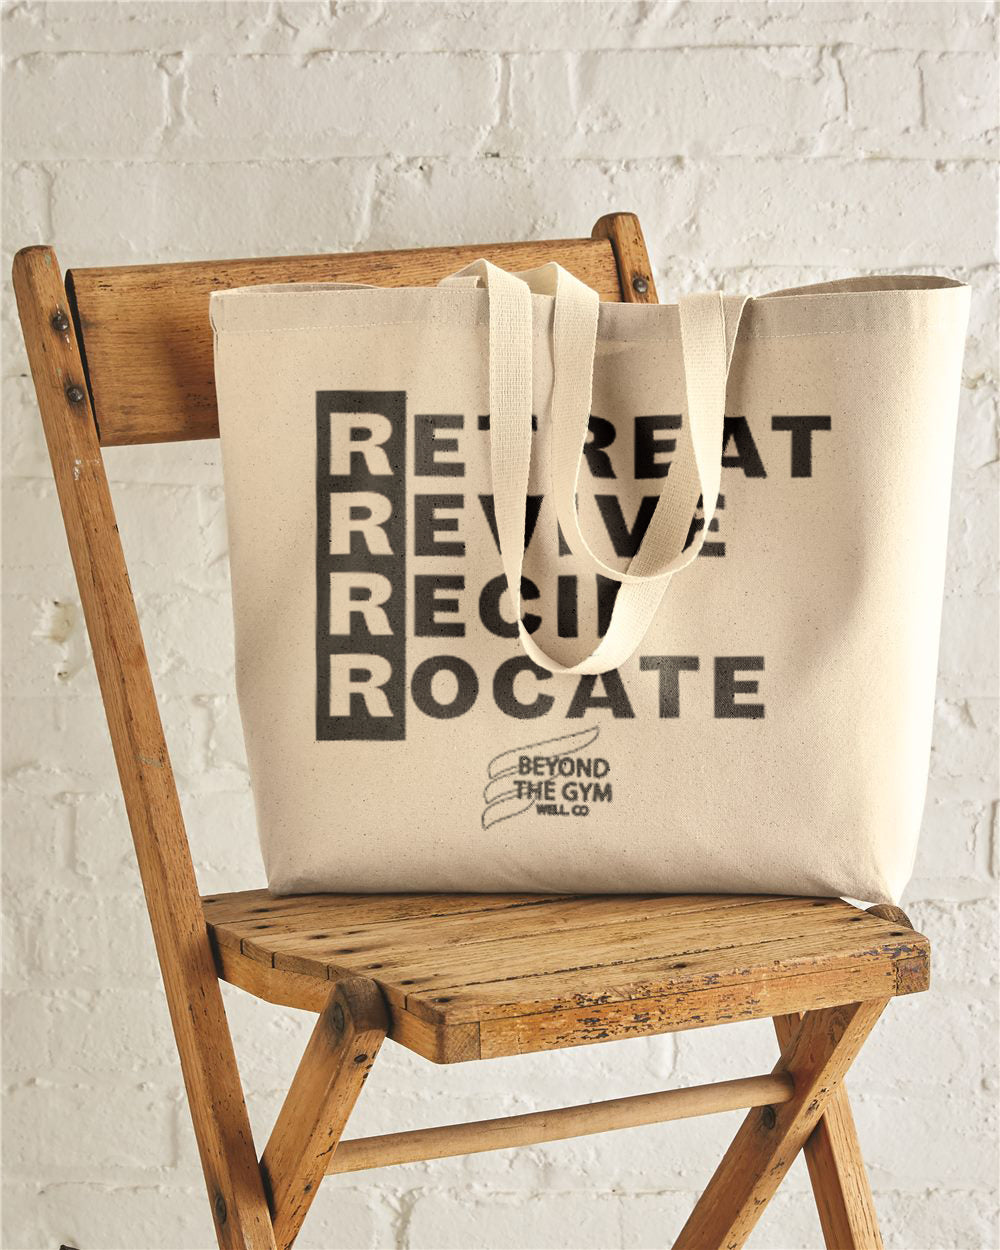 Retreat Revive Reciprocate Beyond The Gym Well Co. Jumbo Cotton Canvas Tote Bag